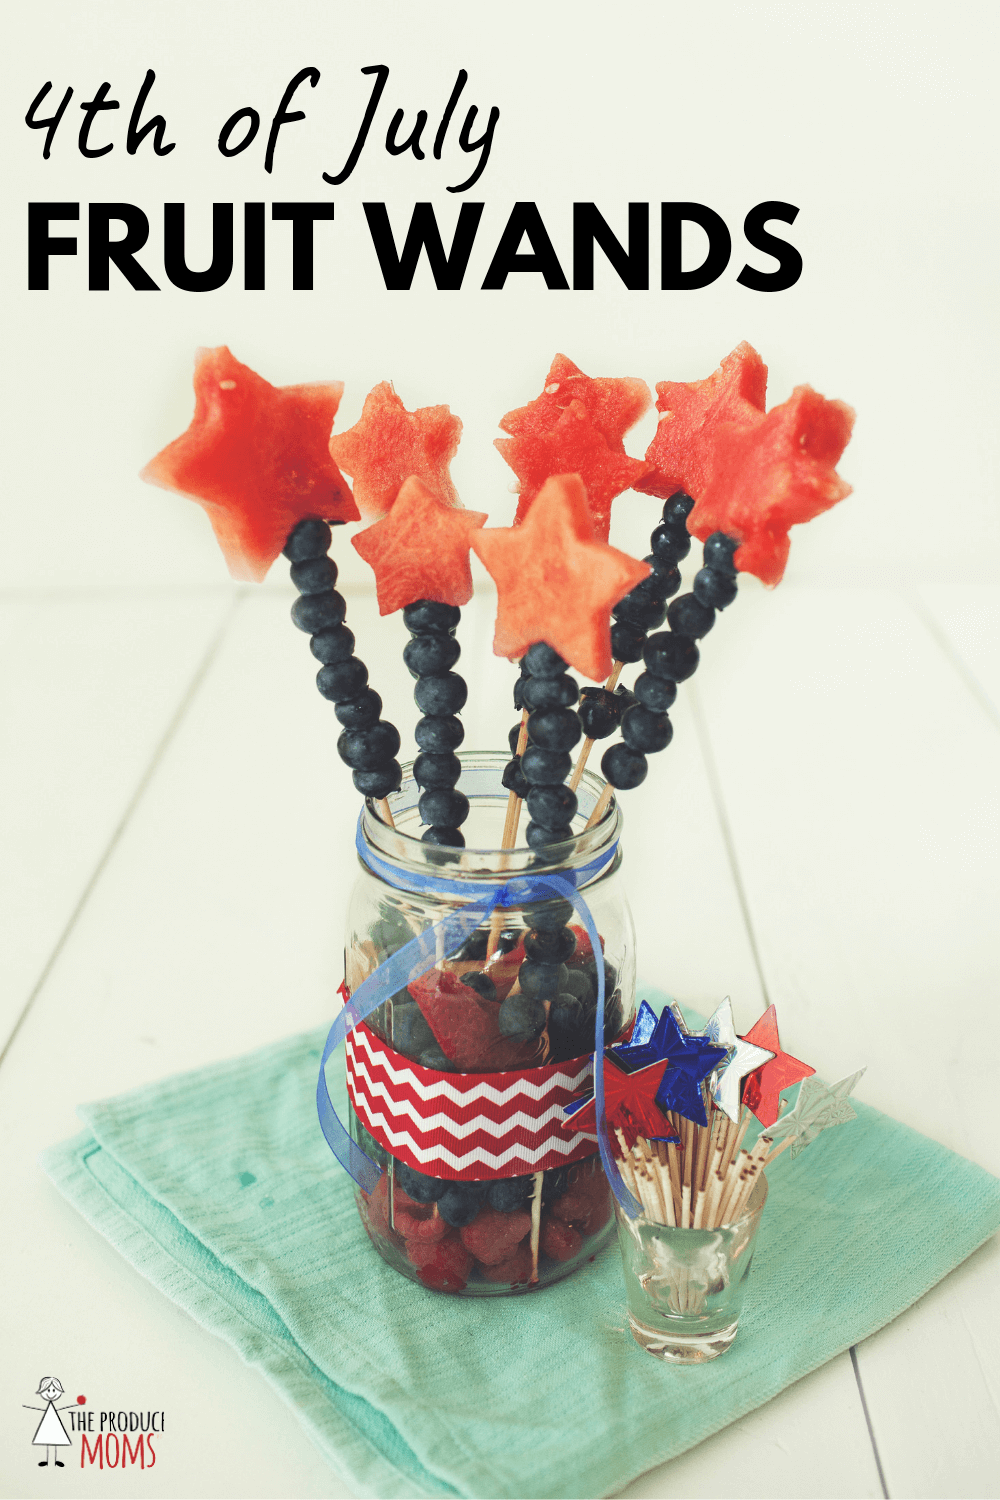 4th of July Fruit Wands